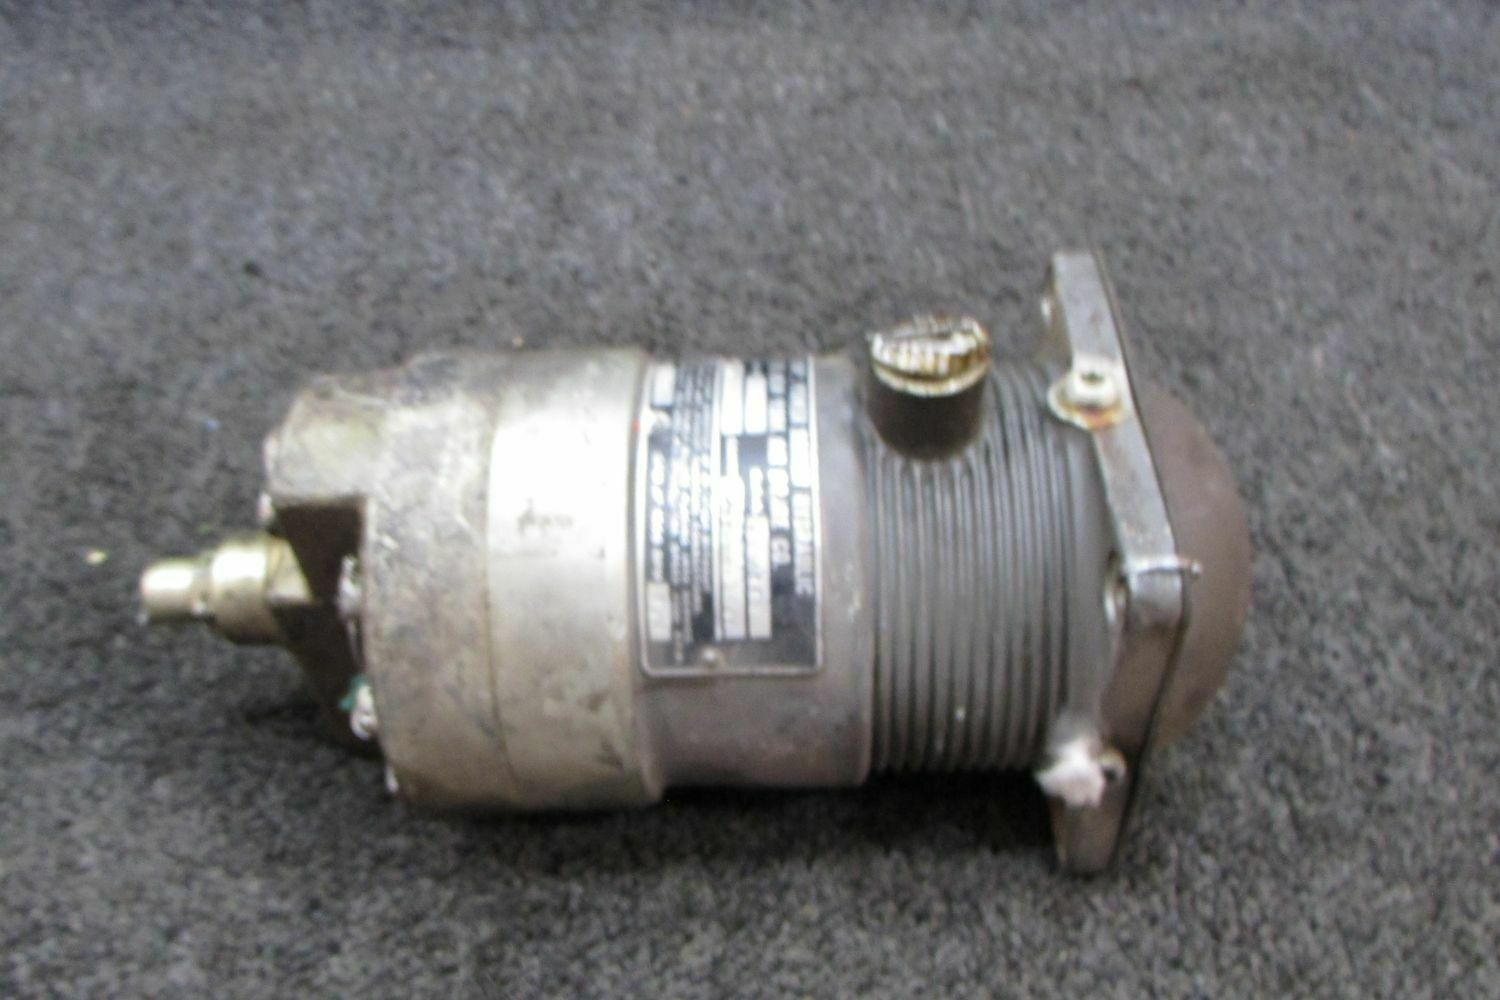 67MA350-1 Pump Power Driven Hydraulic (CORE)